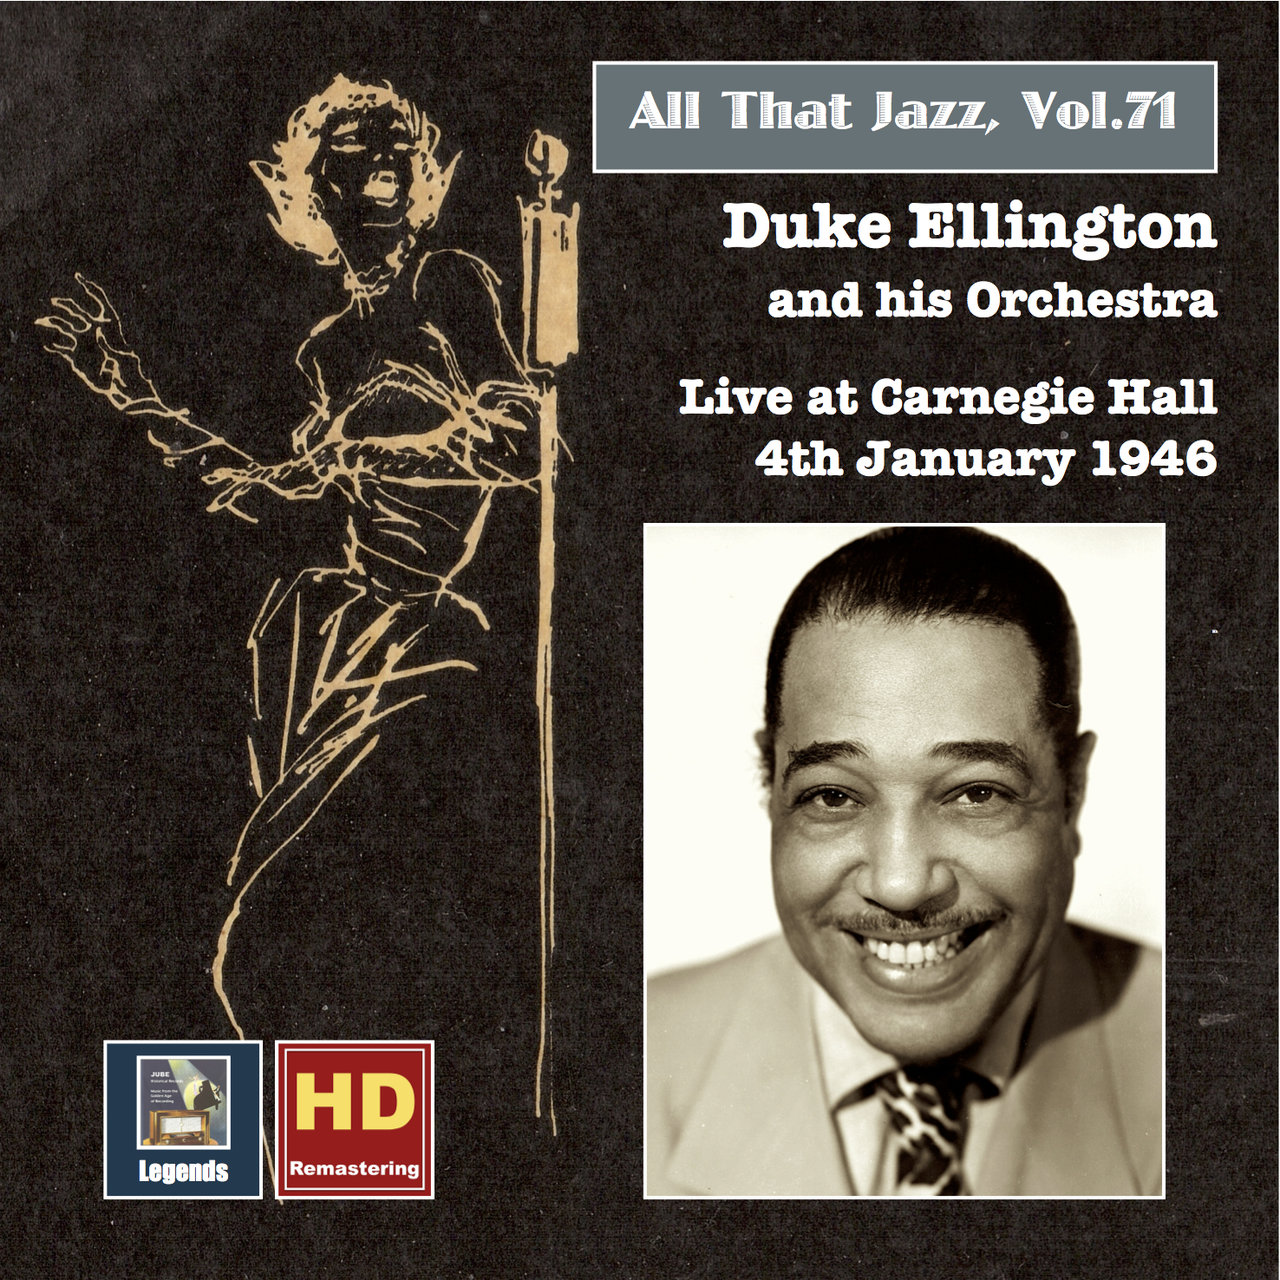 All That Jazz, Vol. 71: Duke Ellington Live at Carnegie Hall, January 4, 1946 (Remastered 2016)